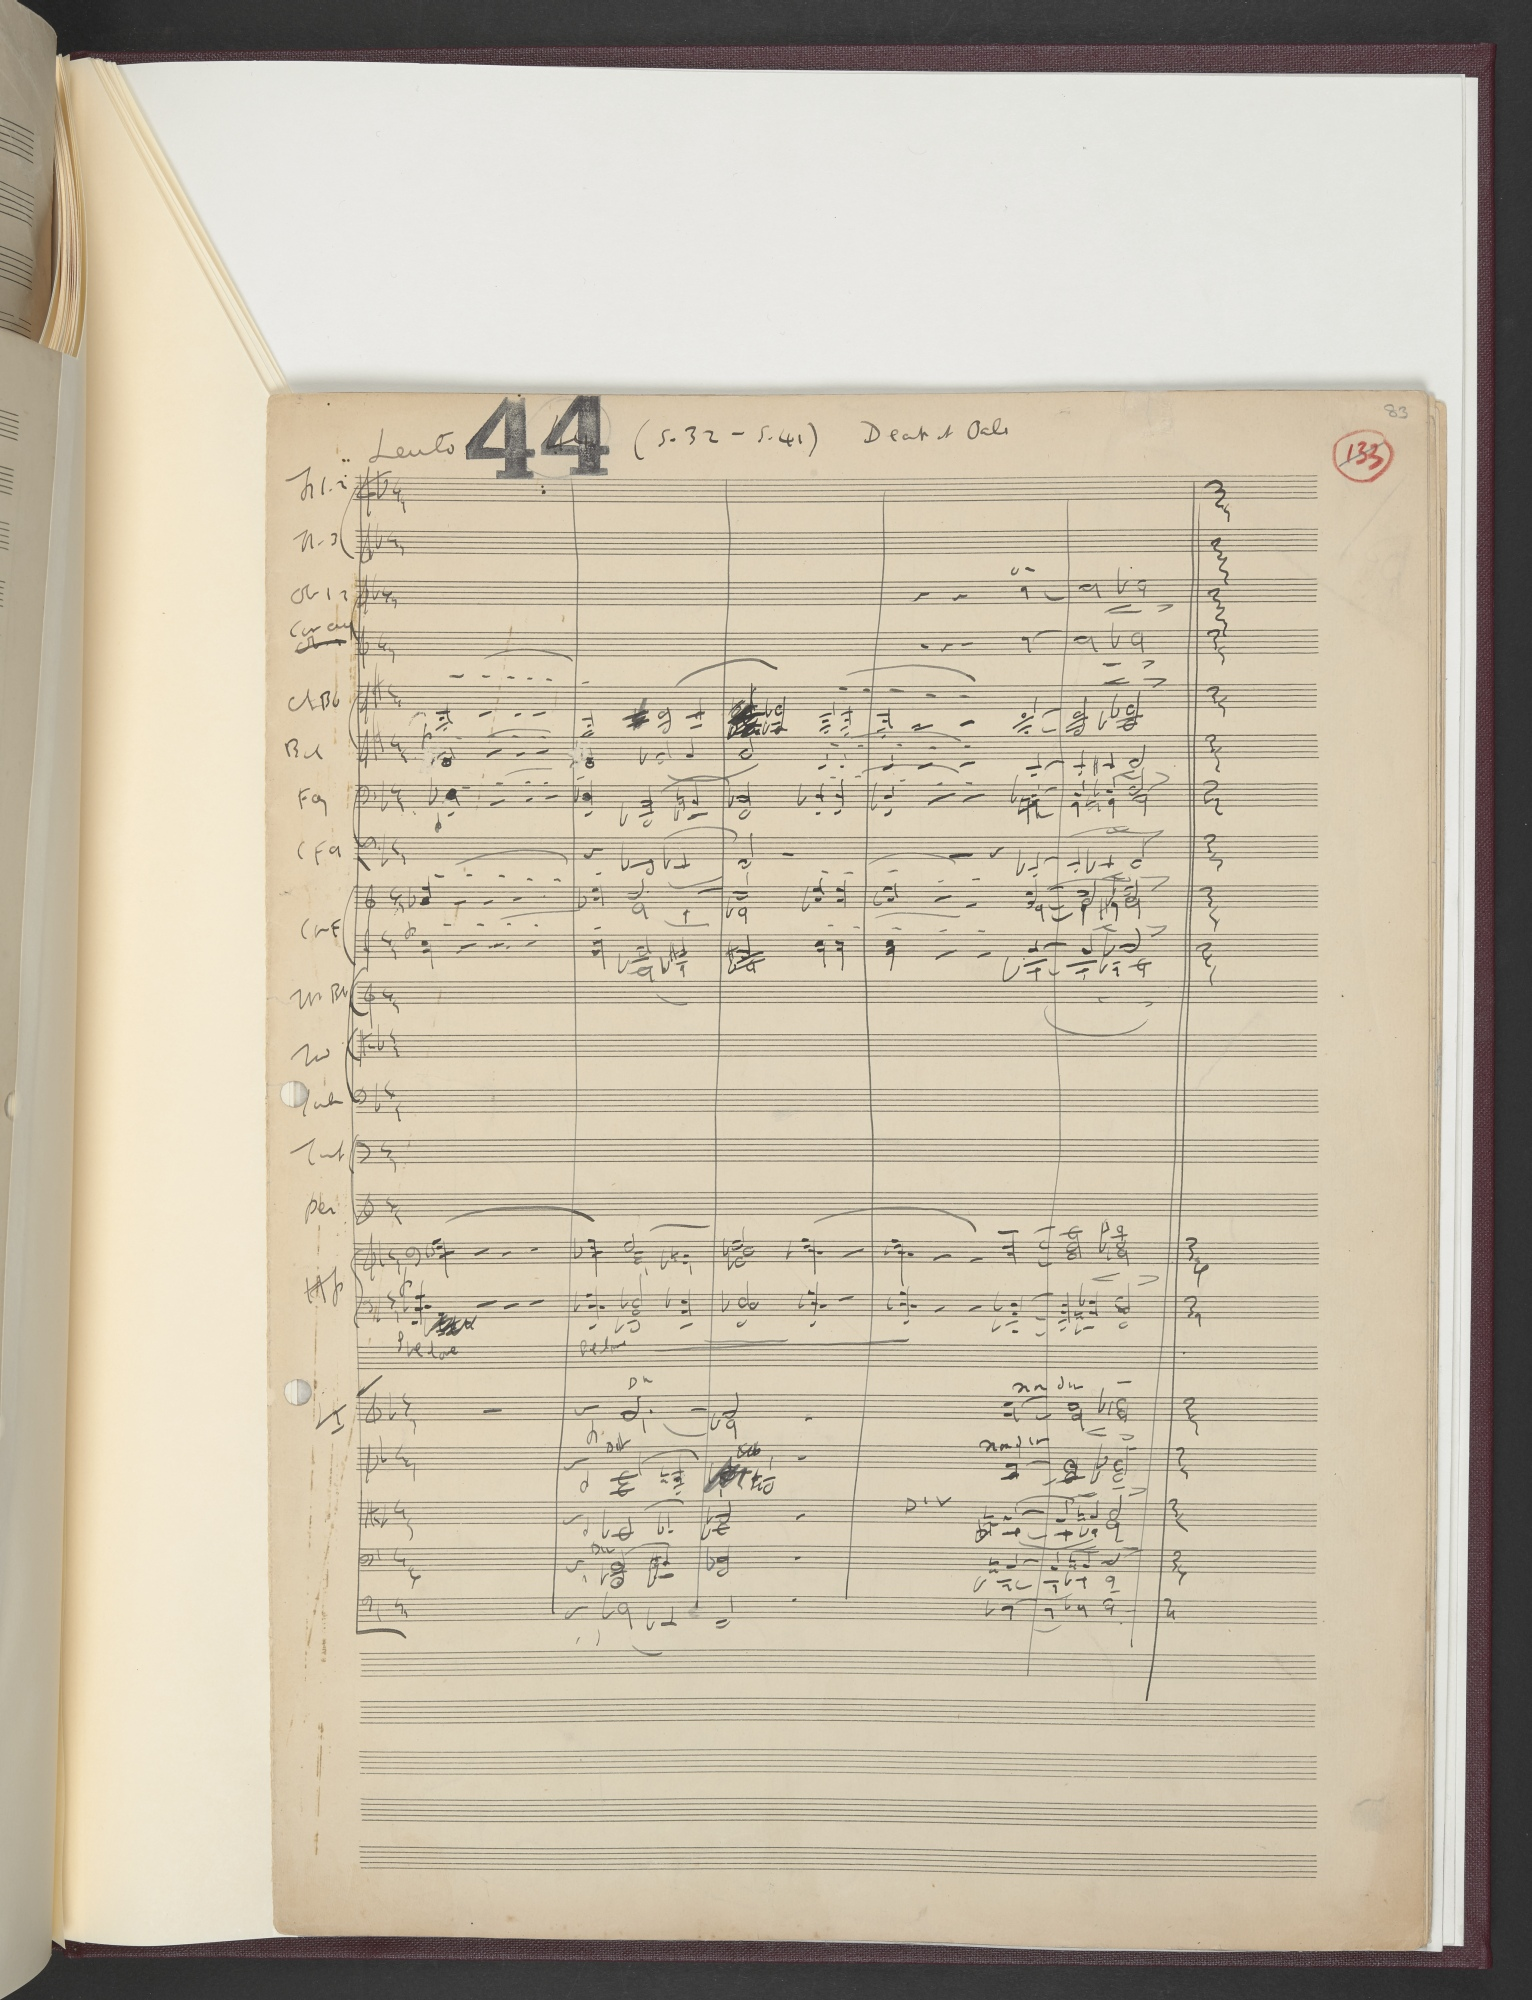 Ralph Vaughan Williams, Scott of the Antarctic (1948), Add MS 59537